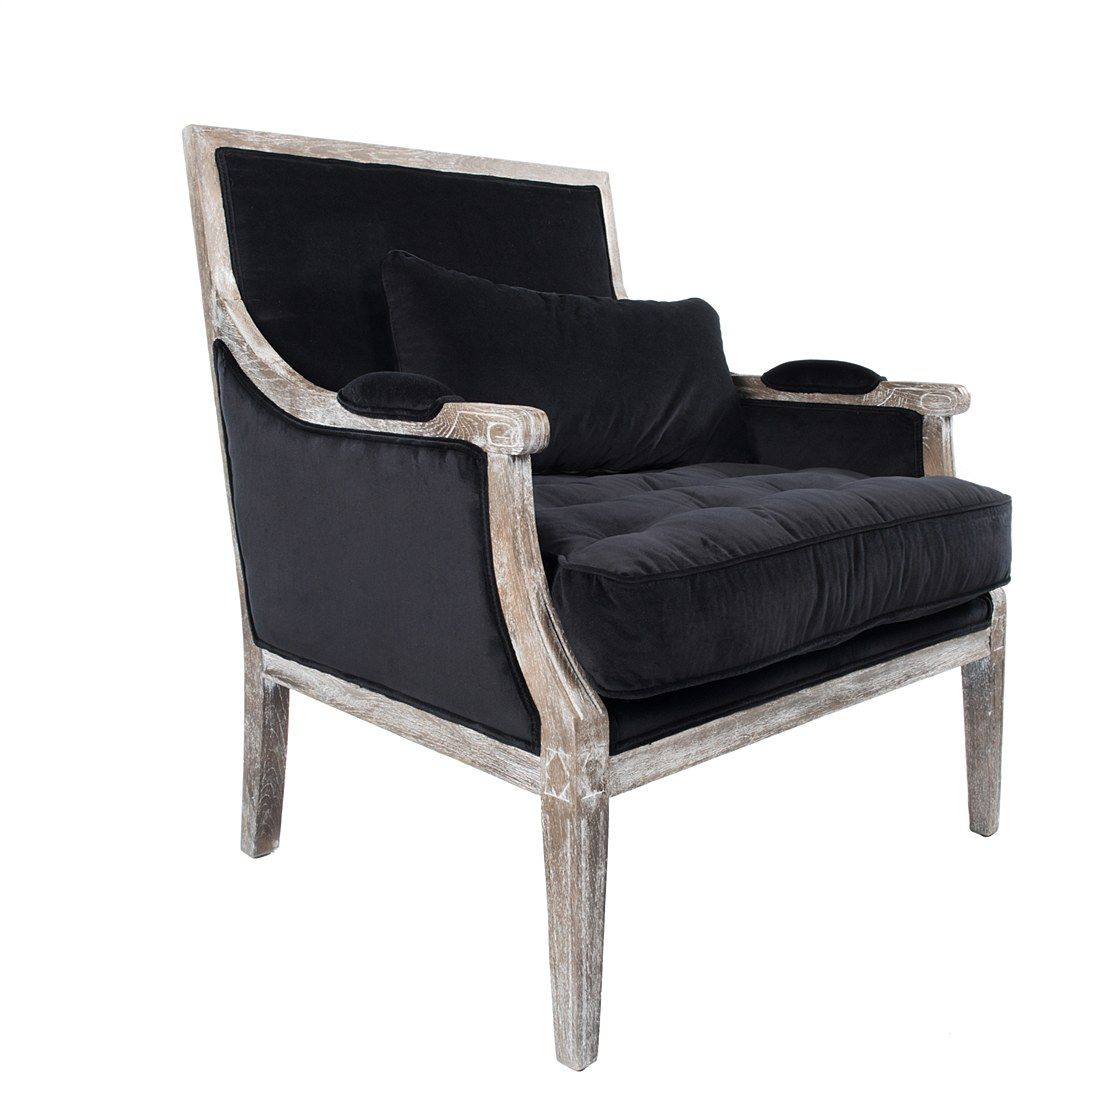 Sofa Accessories Online India La Fayette Arm Chair Black India Jane Love India Jane